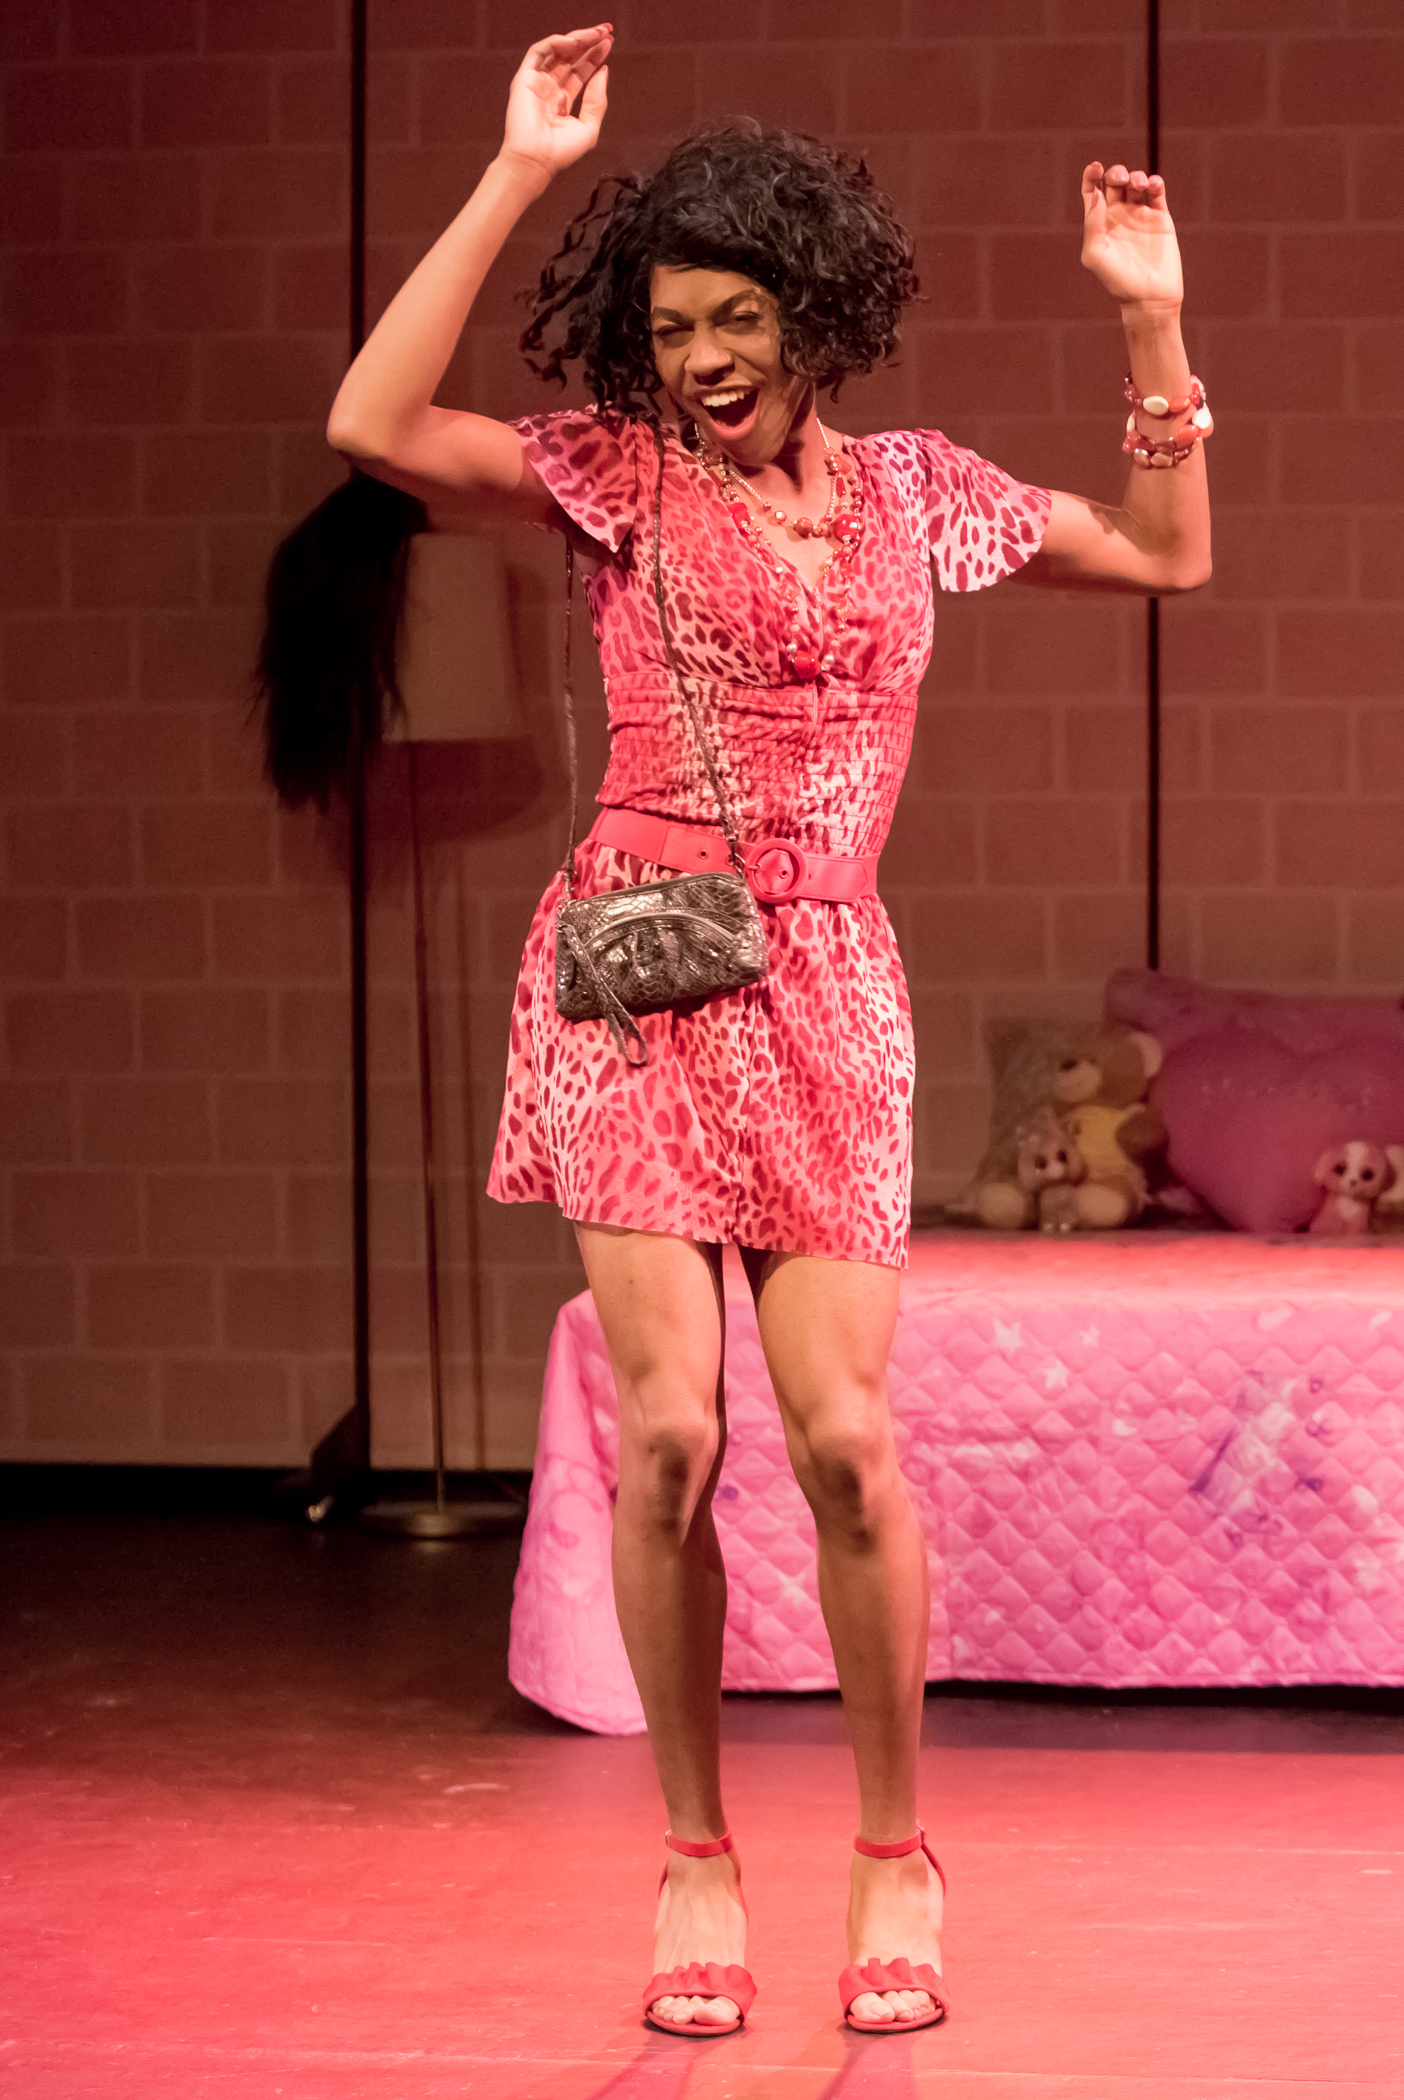 Charles Peoples III as Pink in THE LEGEND OF PINK by Kheven LaGrone, directed by AeJay Mitchell; A Theatre Rhinoceros Production at The Gateway Theatre (formerly The Eureka Theatre.) Photo by David Wilson.